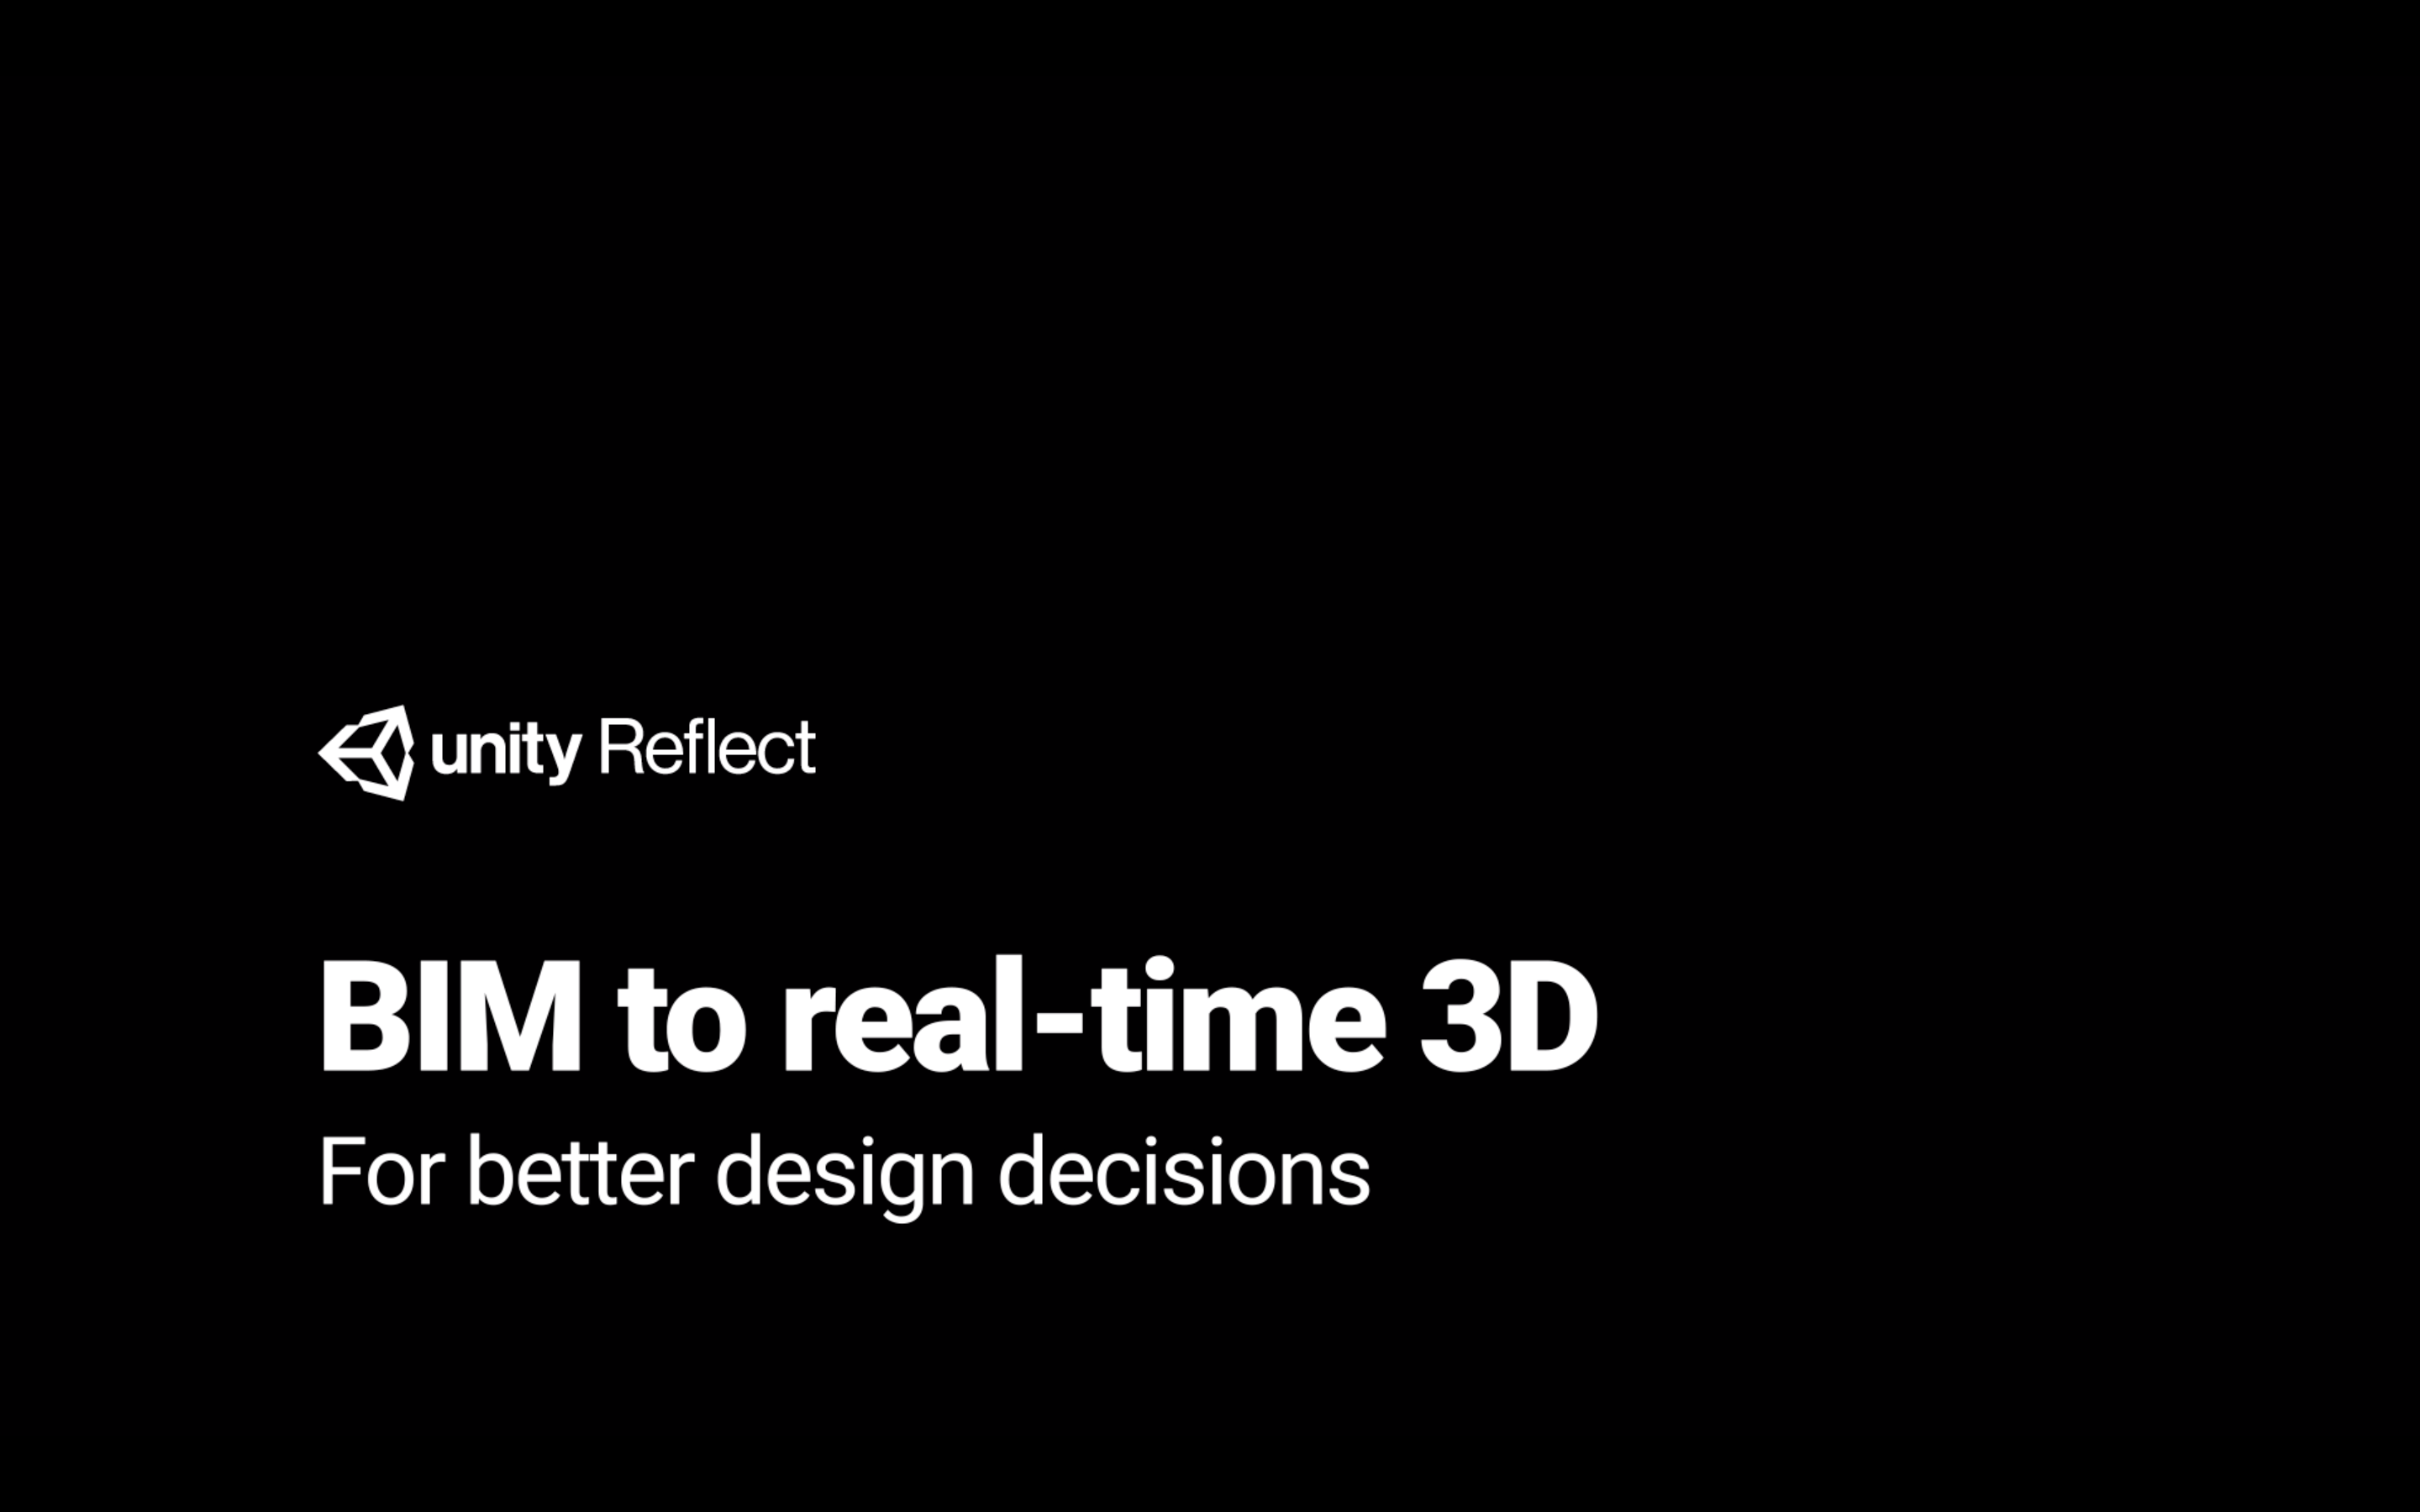 Unity Reflect: BIM to real-time 3D in one click for better design decisions